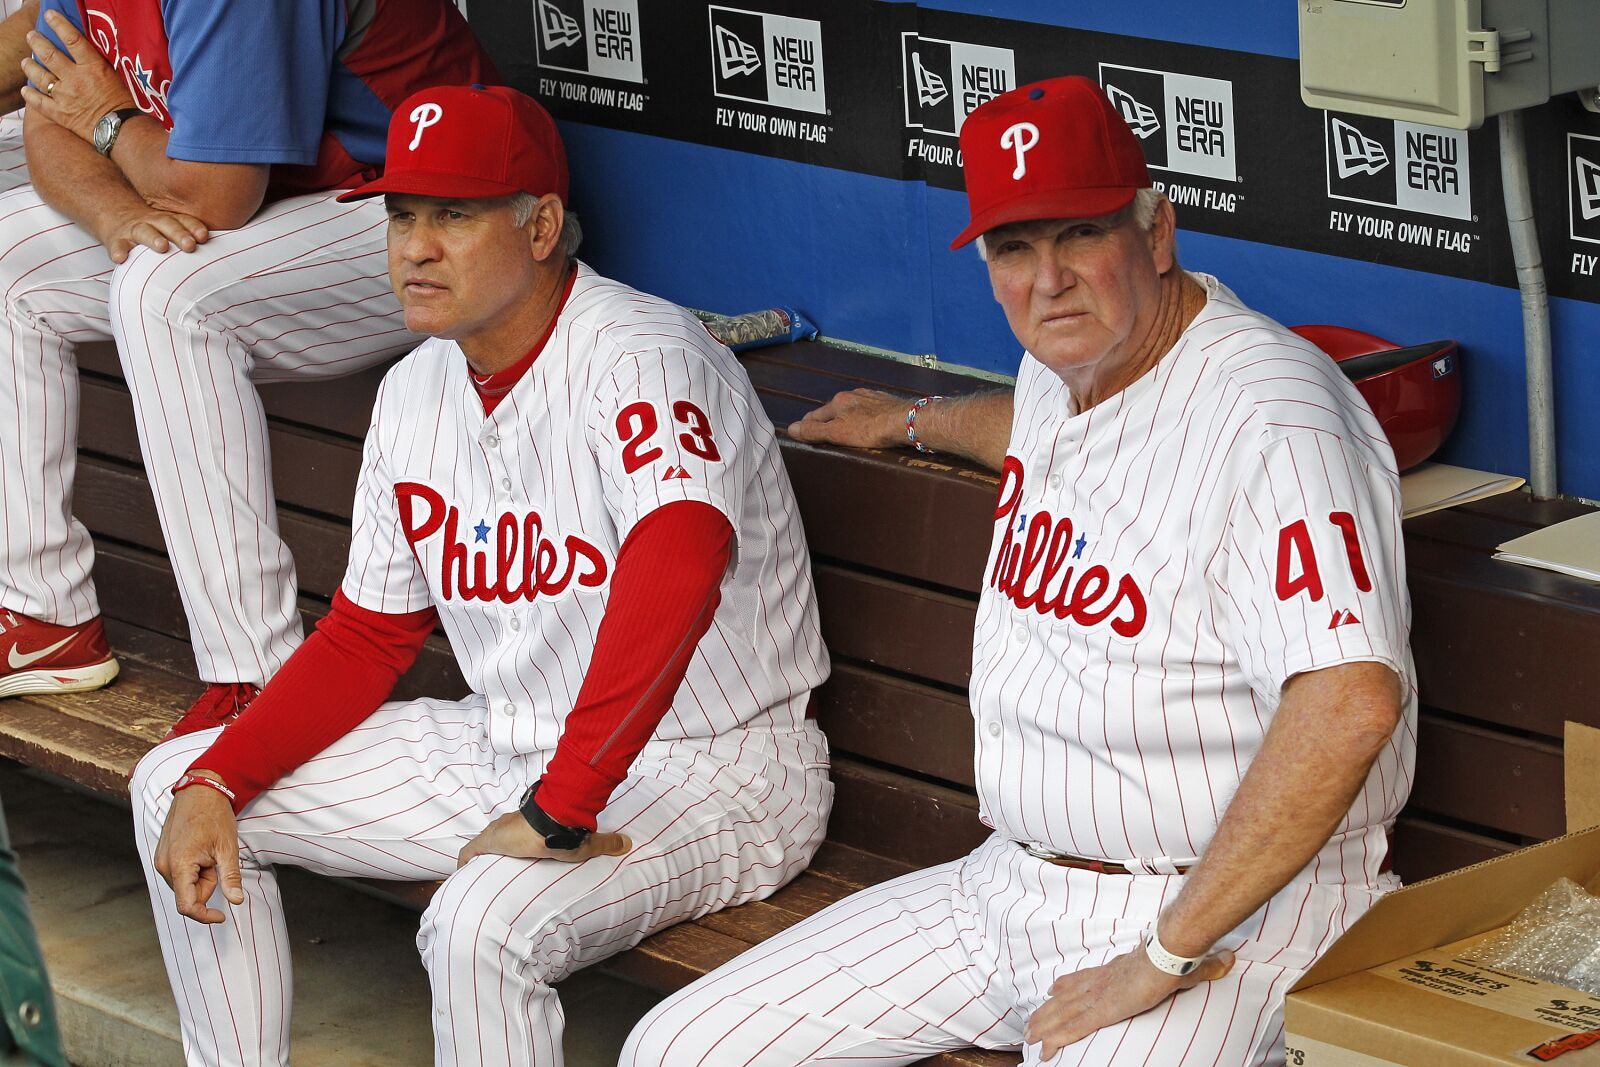 Phillies Amid Unfamiliar Territory in Search for New Manager